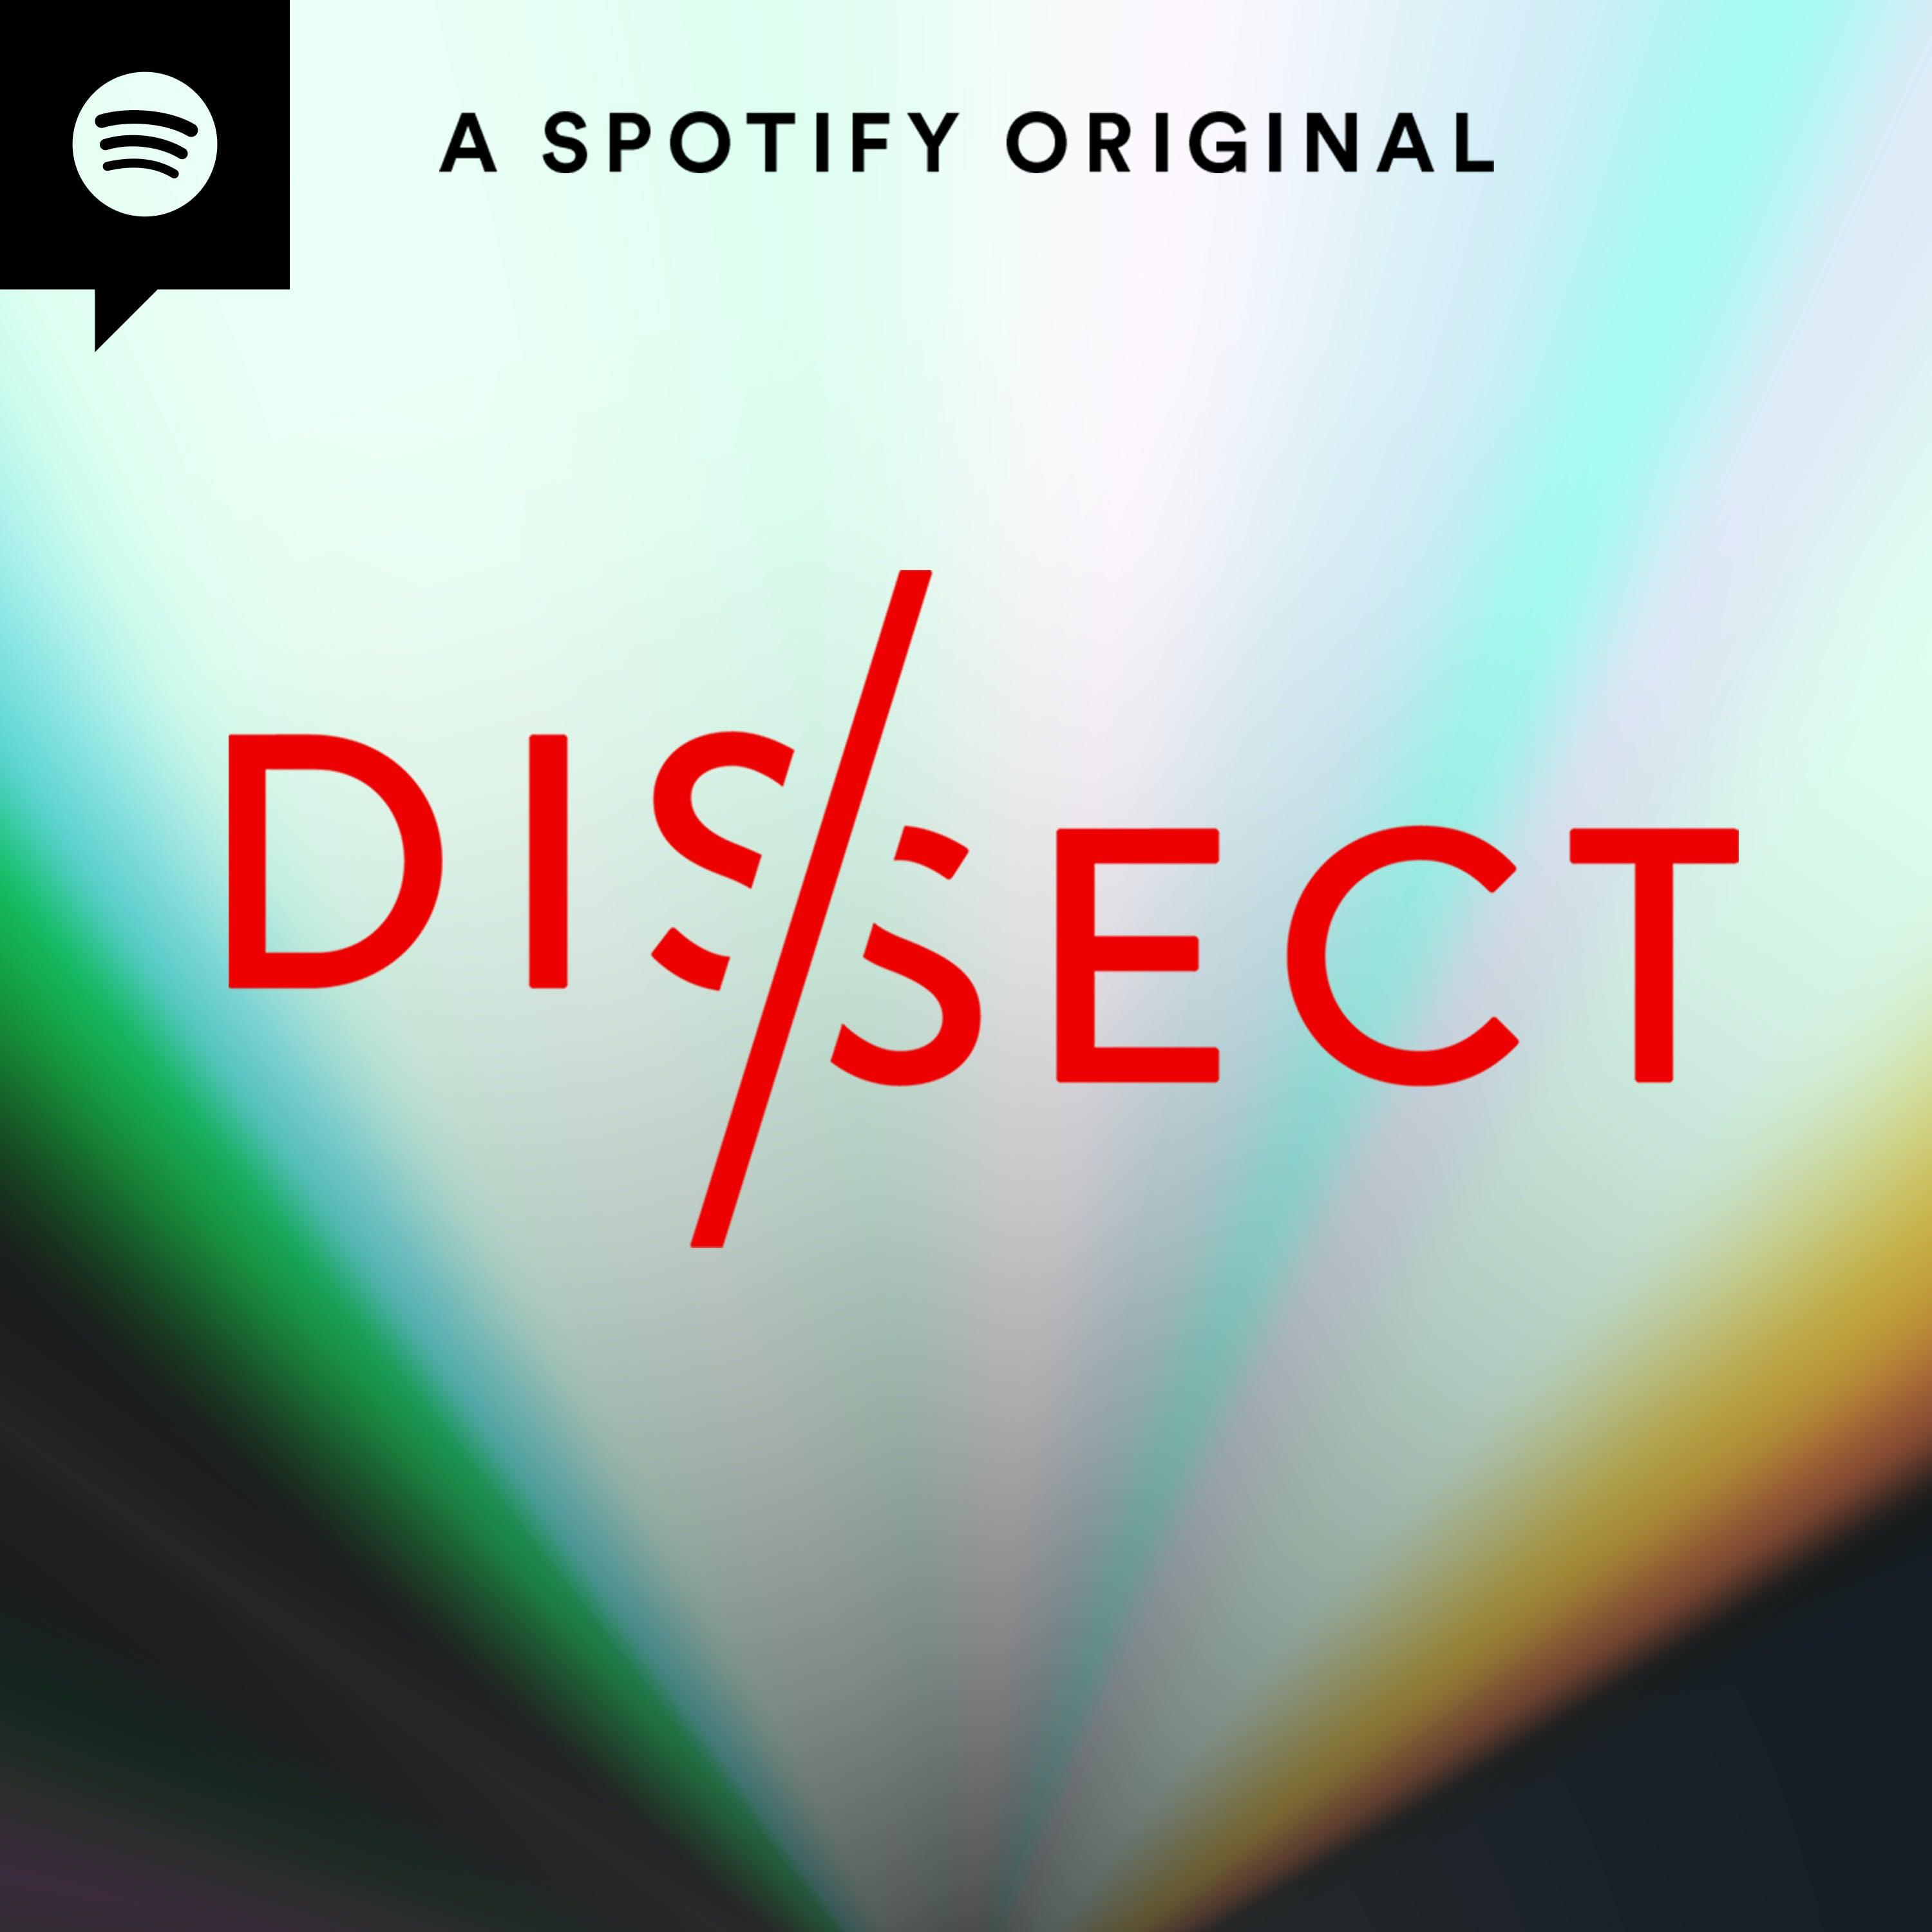 Dissect